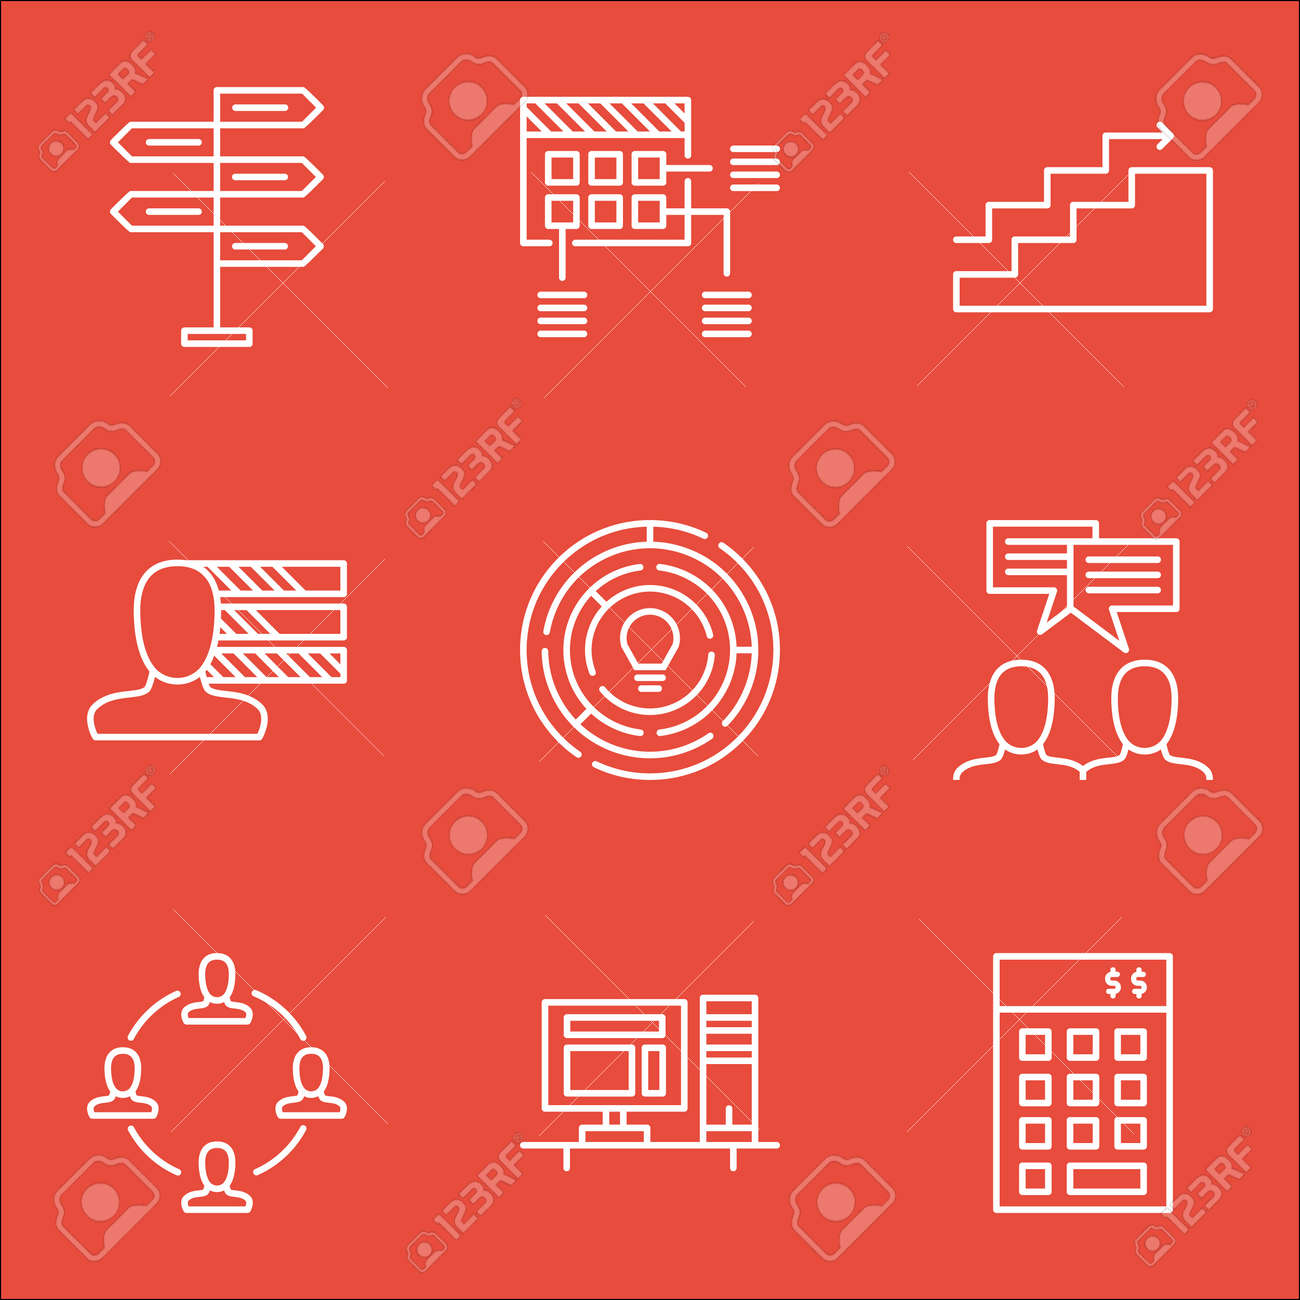 set of project management icons on personal skills discussion set of project management icons on personal skills discussion and innovation topics editable vector